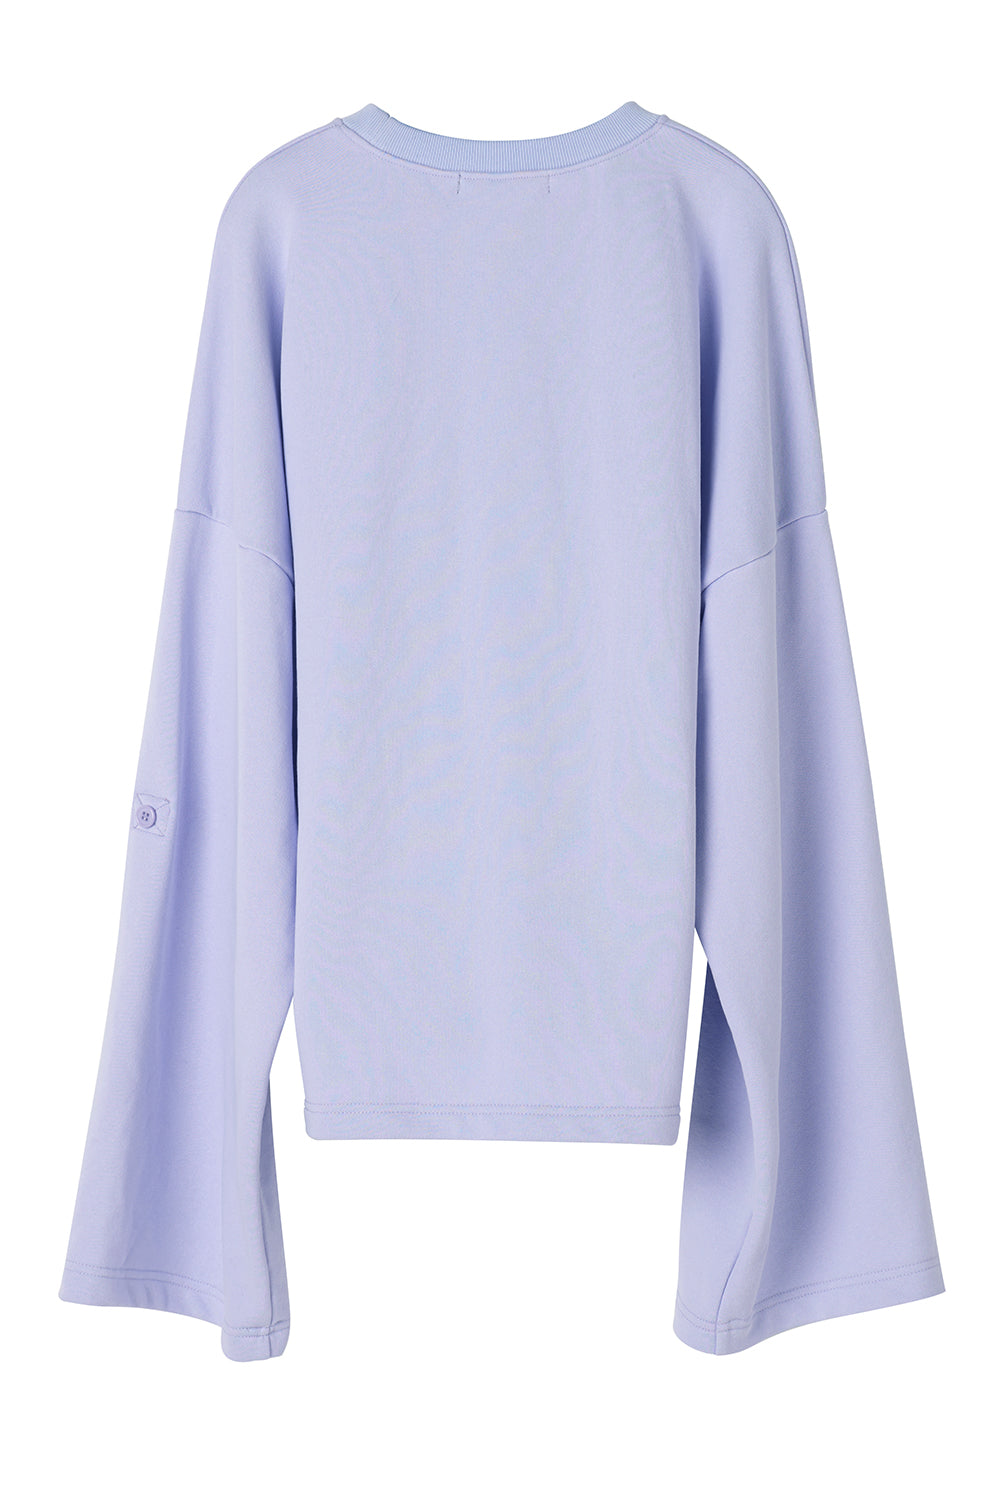 Zipped Sweatshirt-Lilac